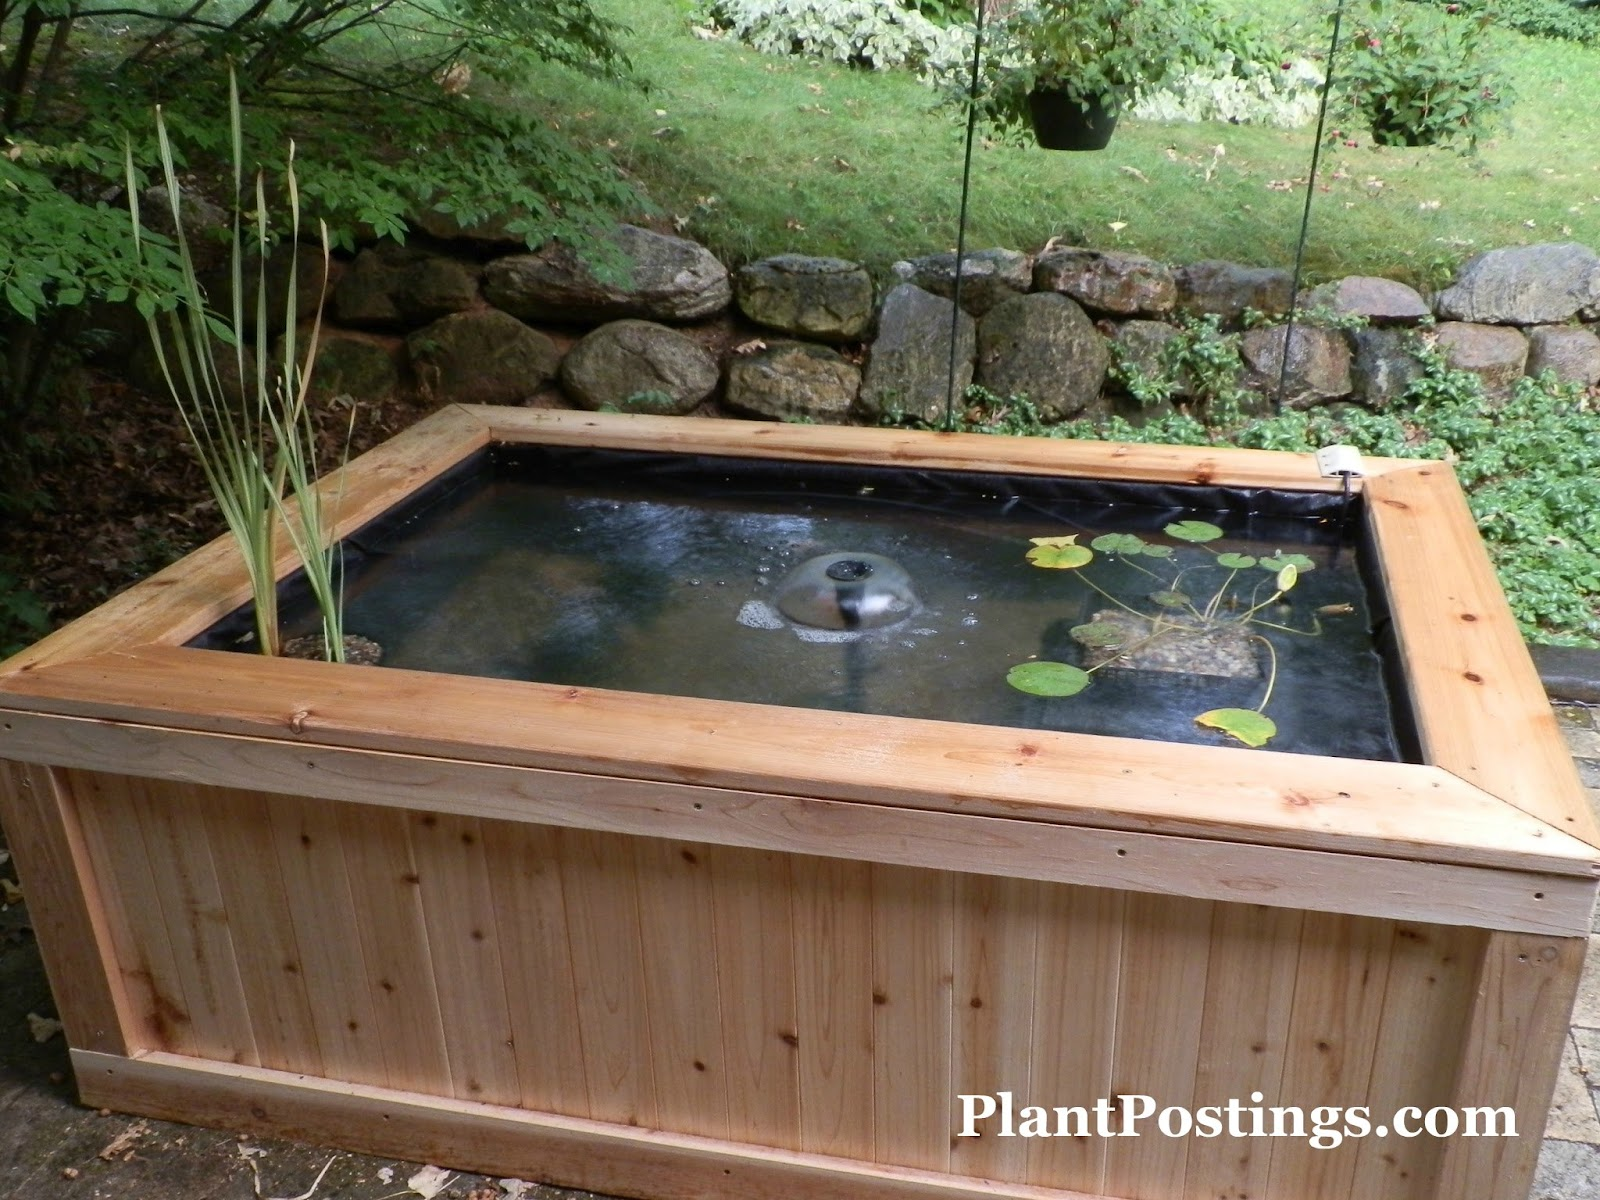 Raised Garden Pond Ideas : PlantPostings How to make an aboveground pond